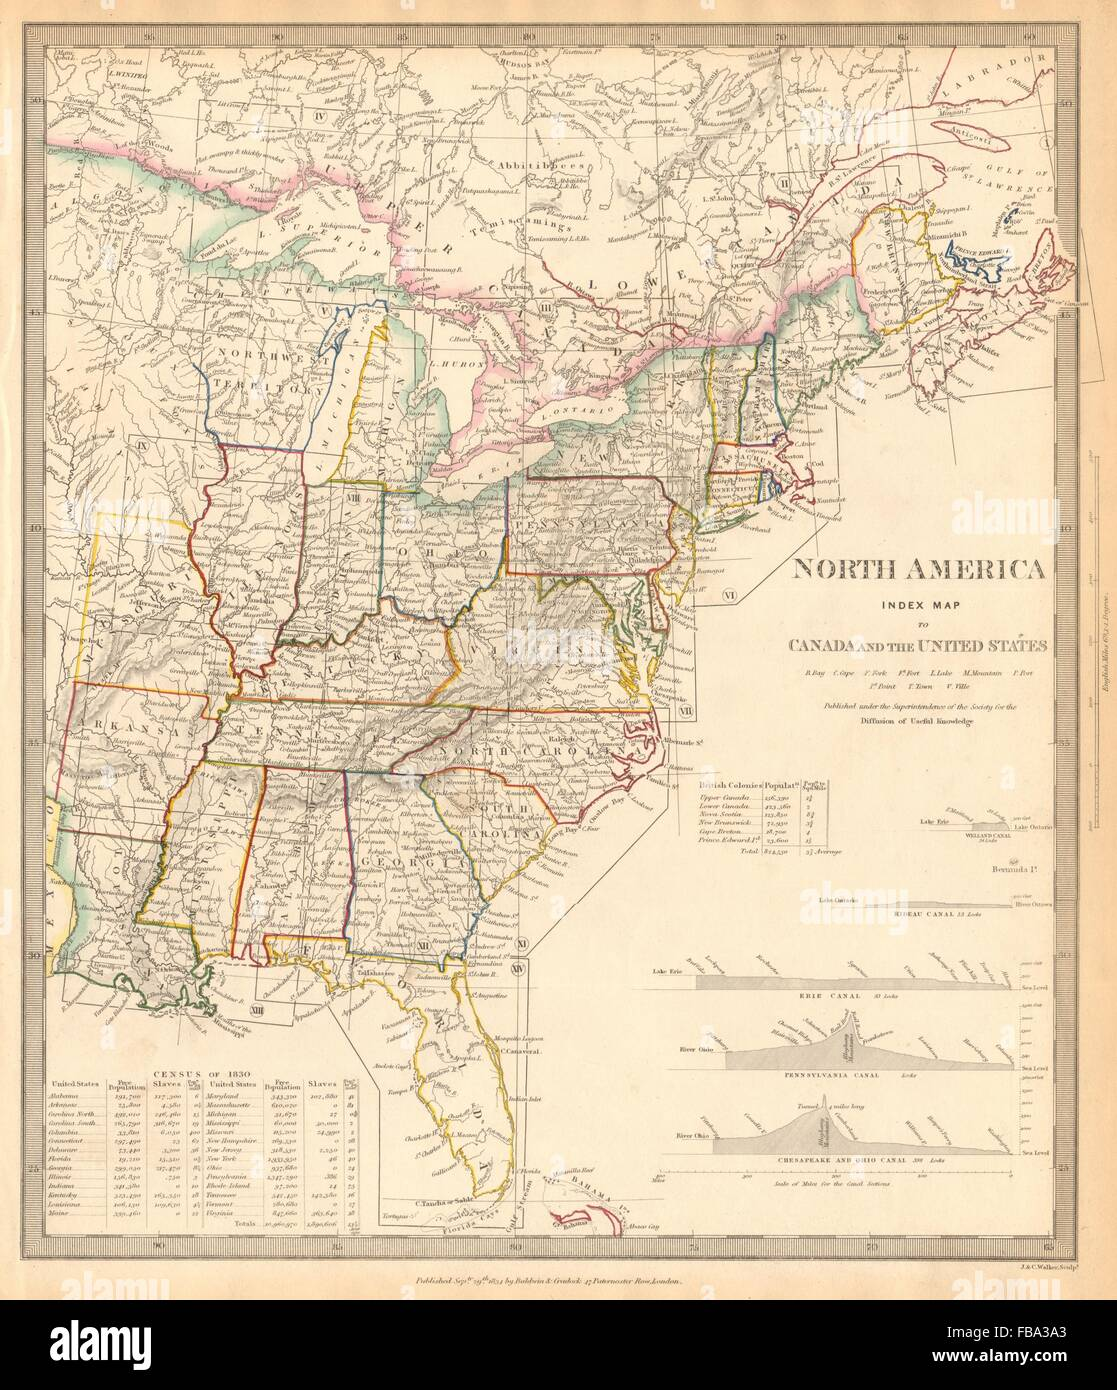 East Coast Of The United States Free Maps Free Blank Maps Free - Free map of usa and canada